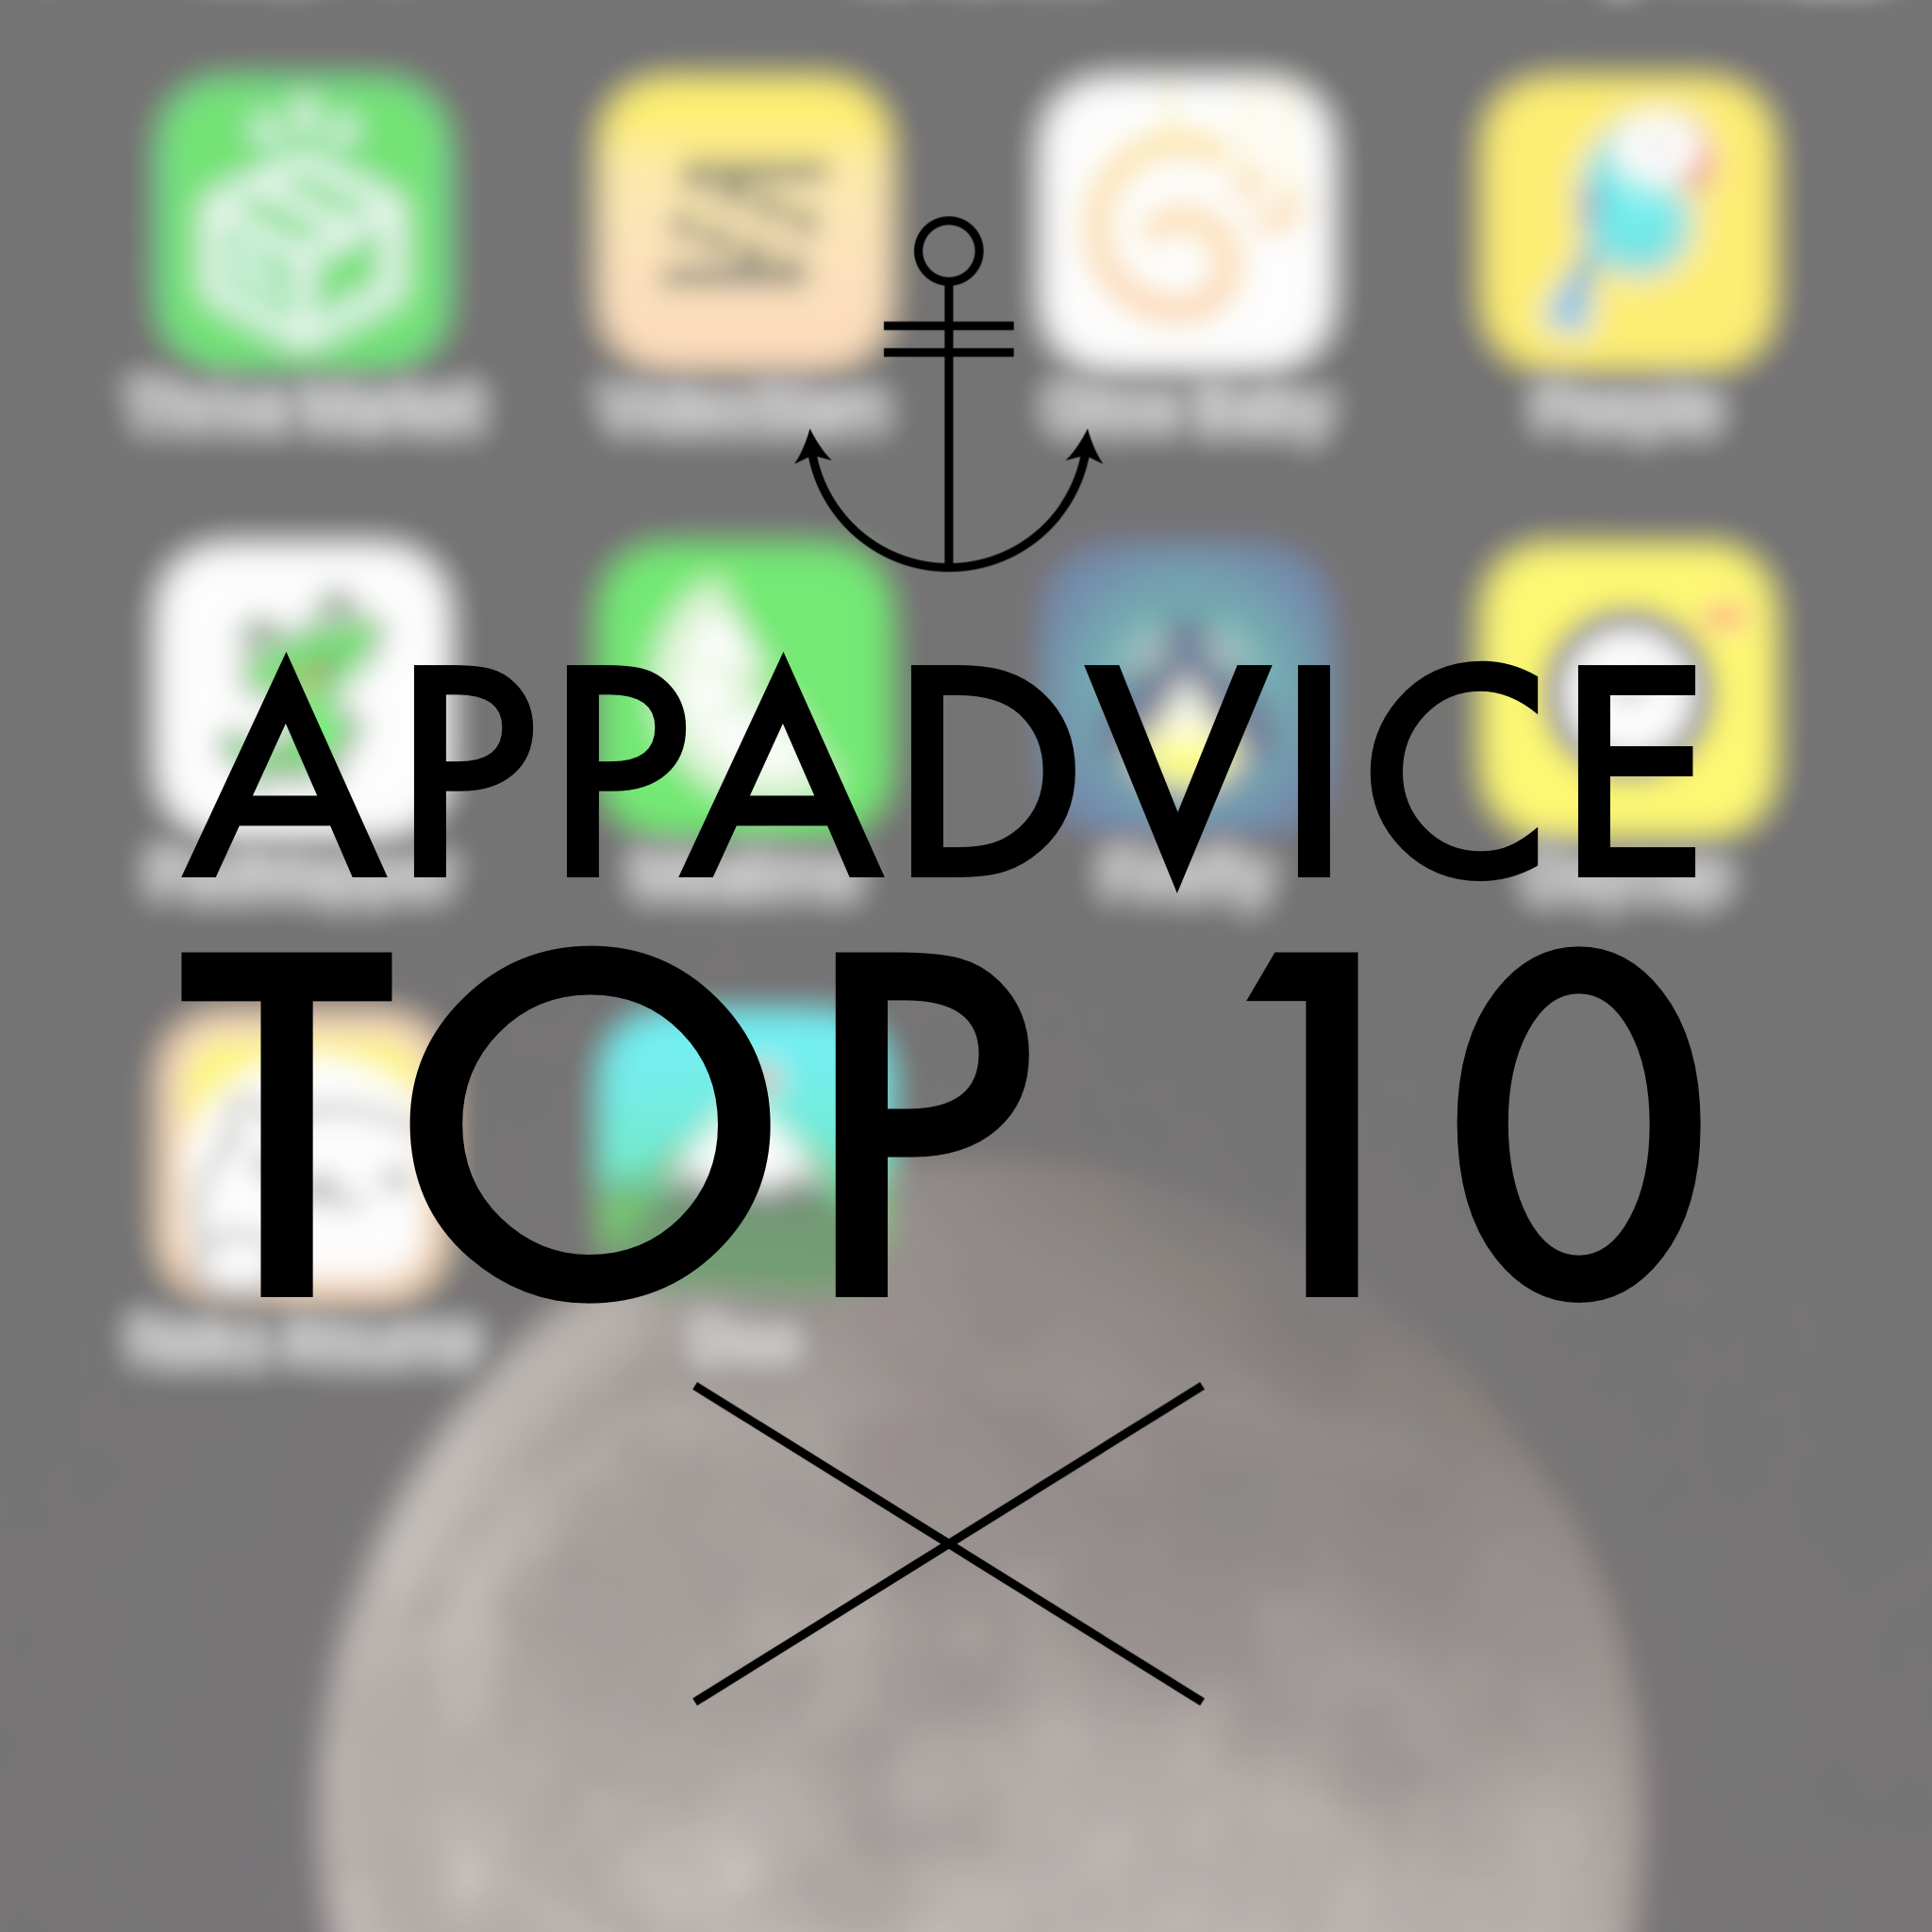 AppAdvice Top 10 - catch up on your apps